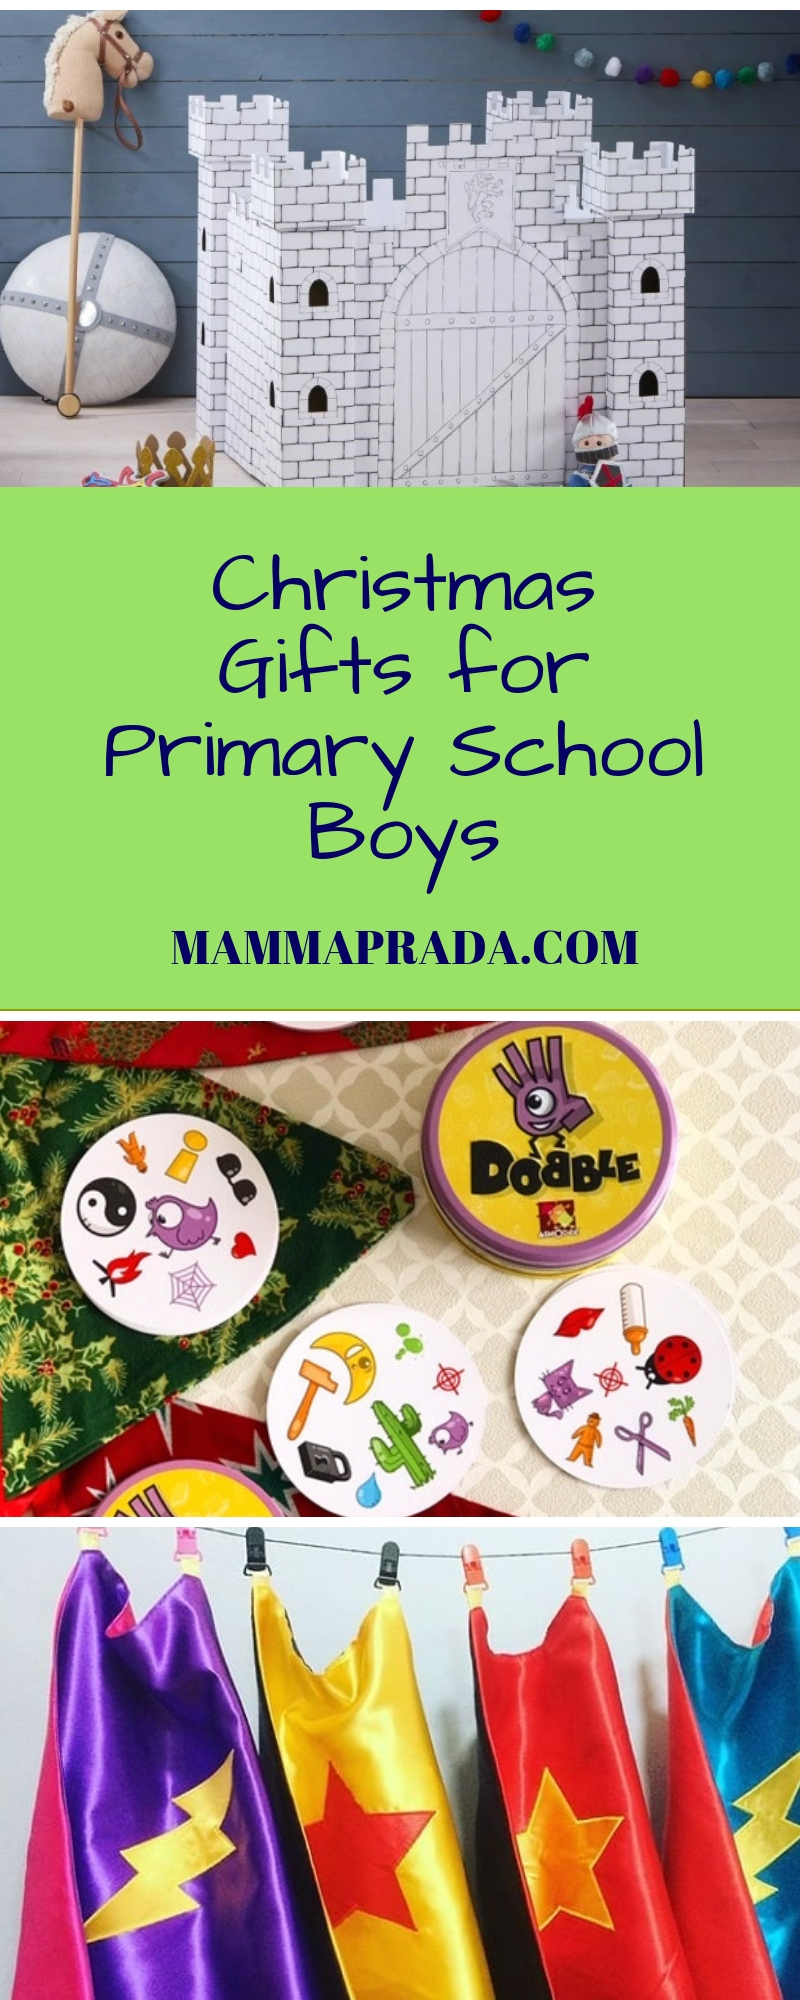 Primary School aged Boys Christmas Gifts Pin 1.jpg